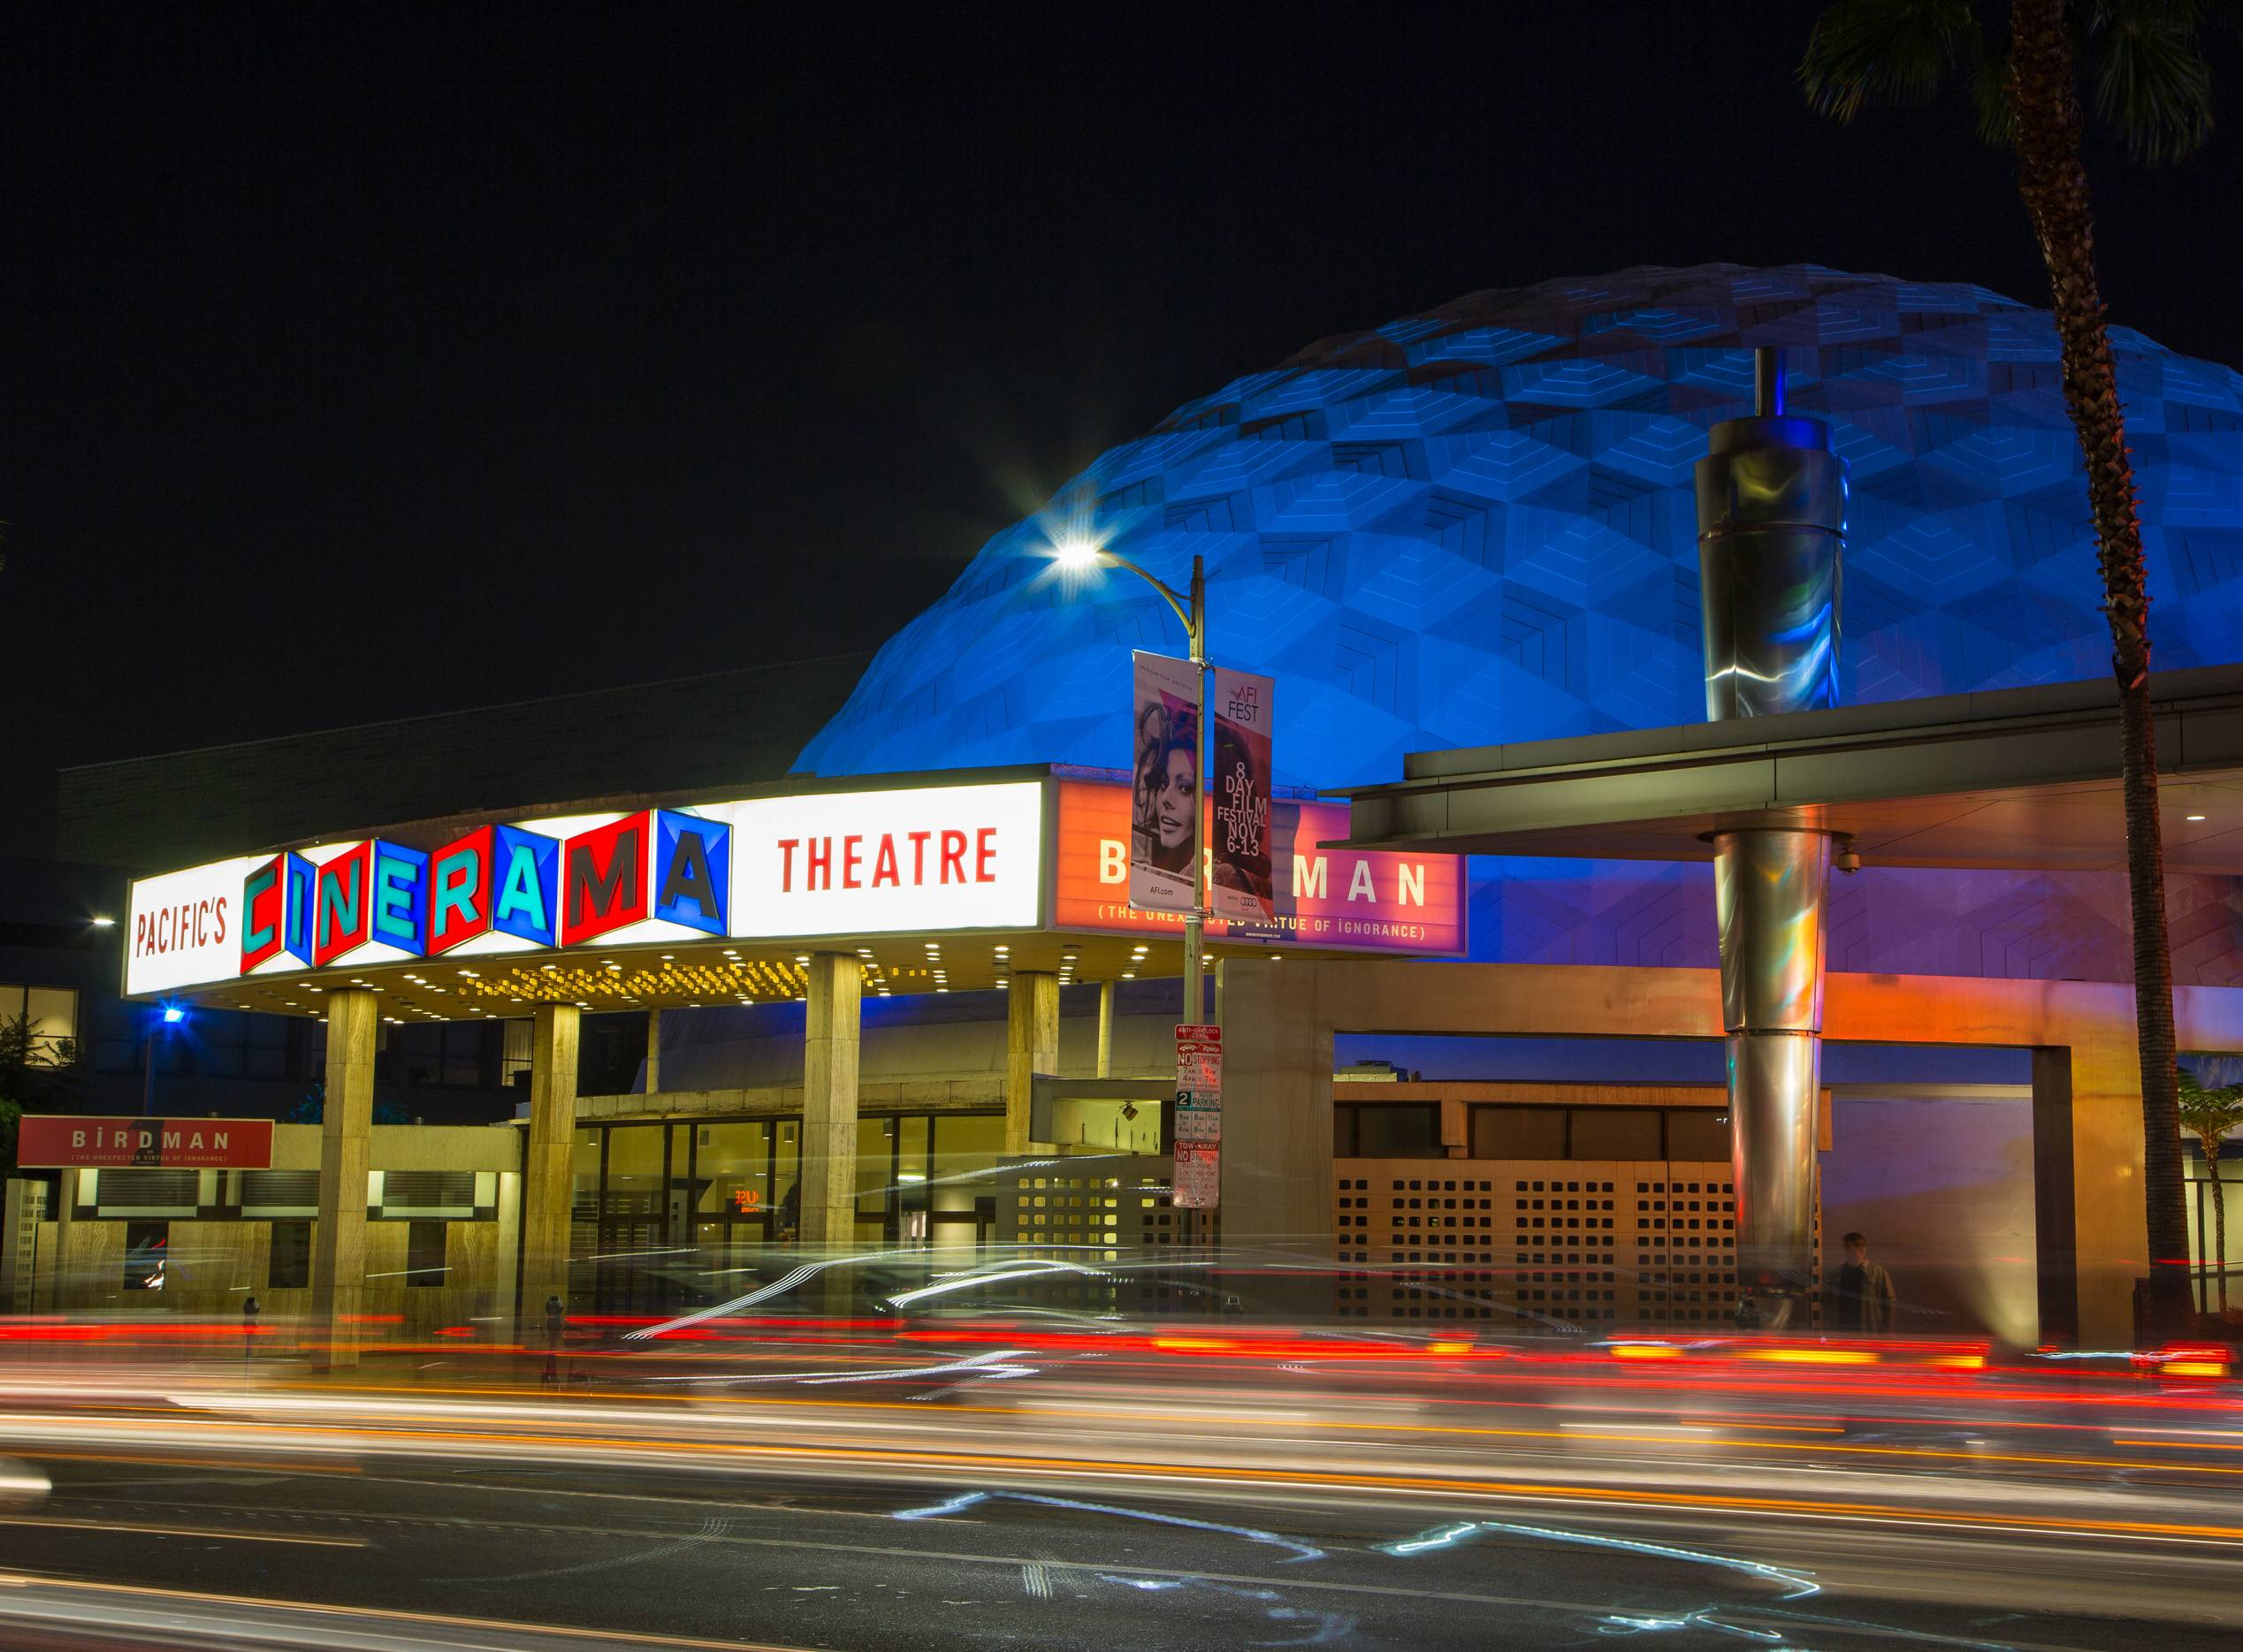 The Arclight Hollywood is a massive movie theater that includes the Cinerama Dome. It's hosted oodles of Hollywood film premieres and is a great place to soak up Oscars vibes.